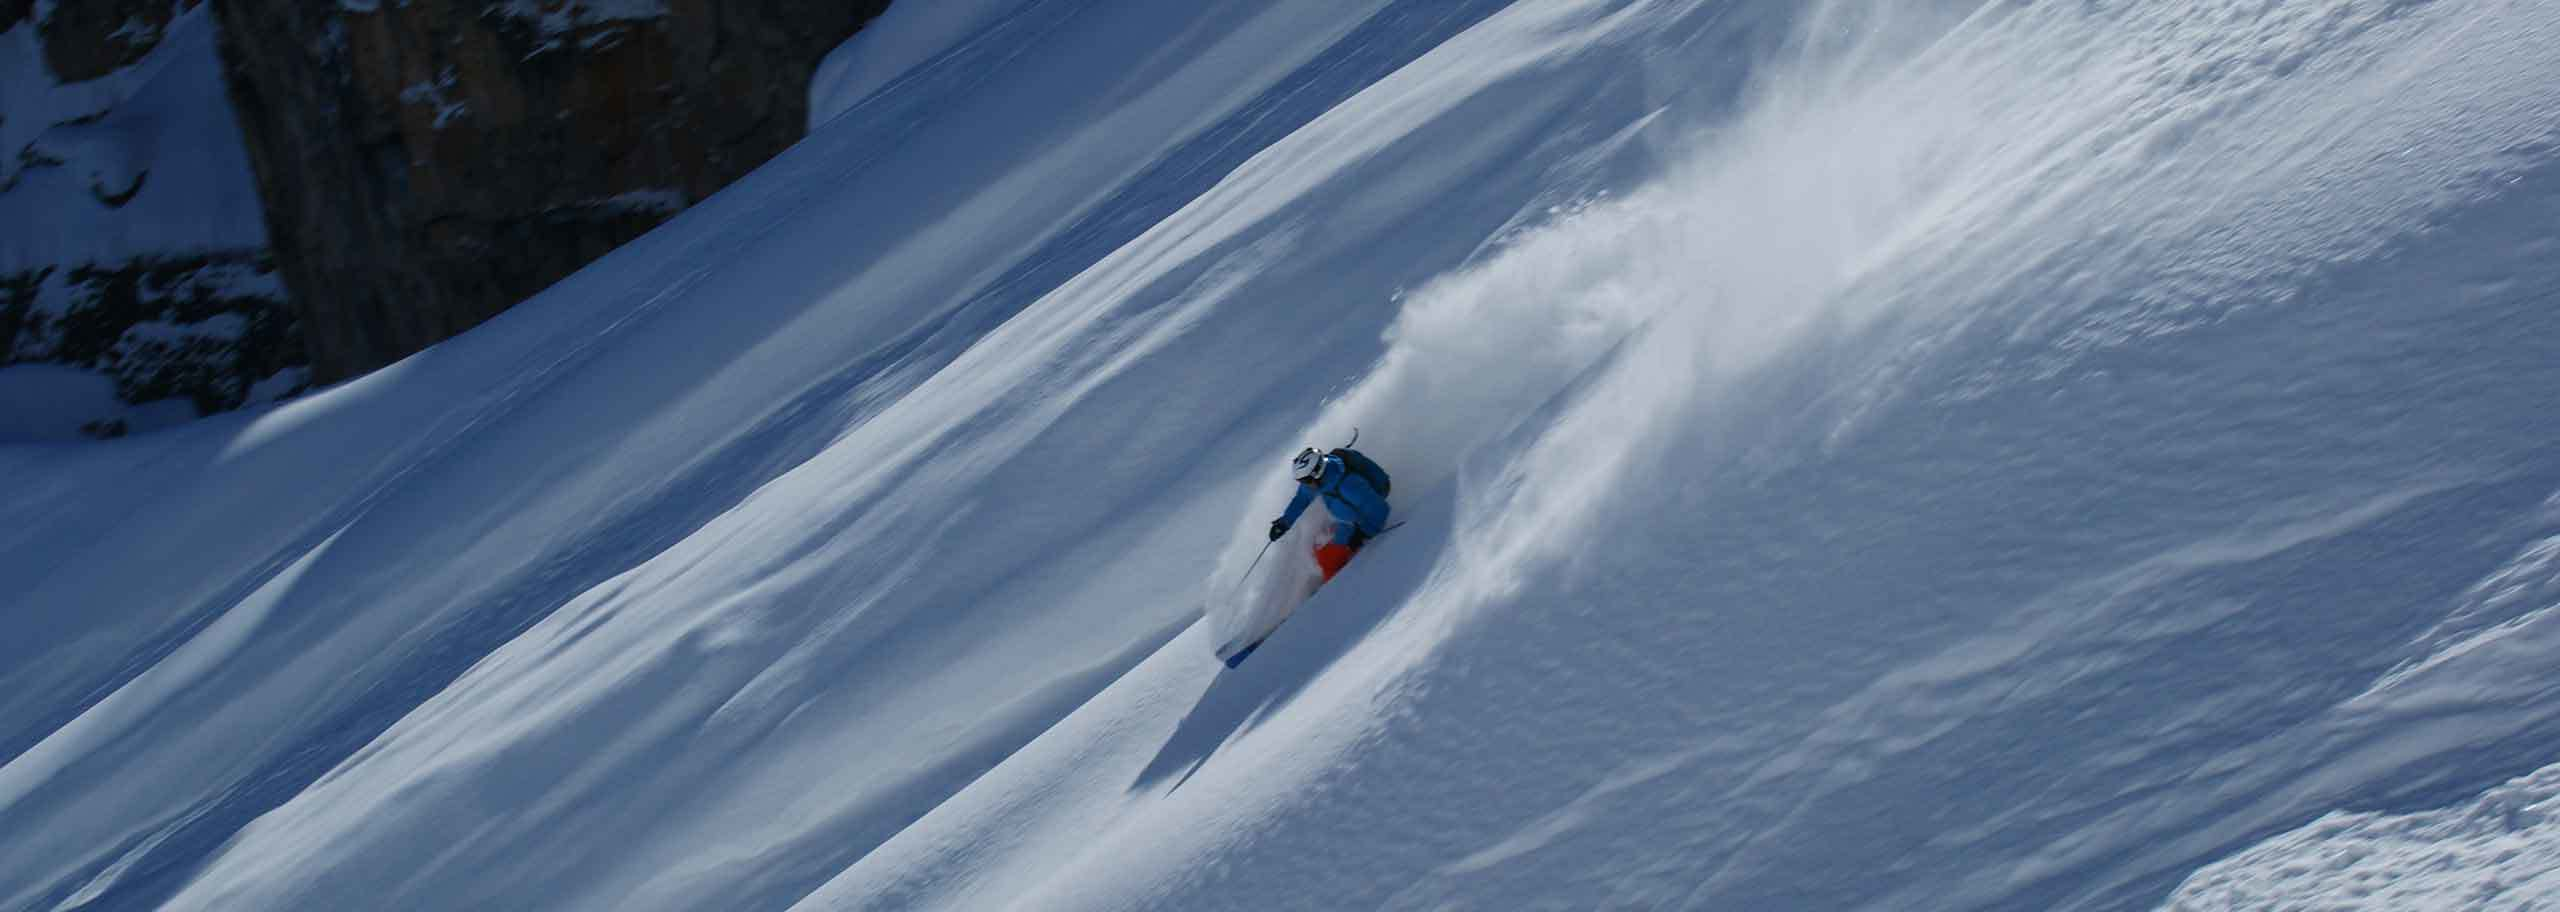 Off-piste skiing with a mountain guide in Solda